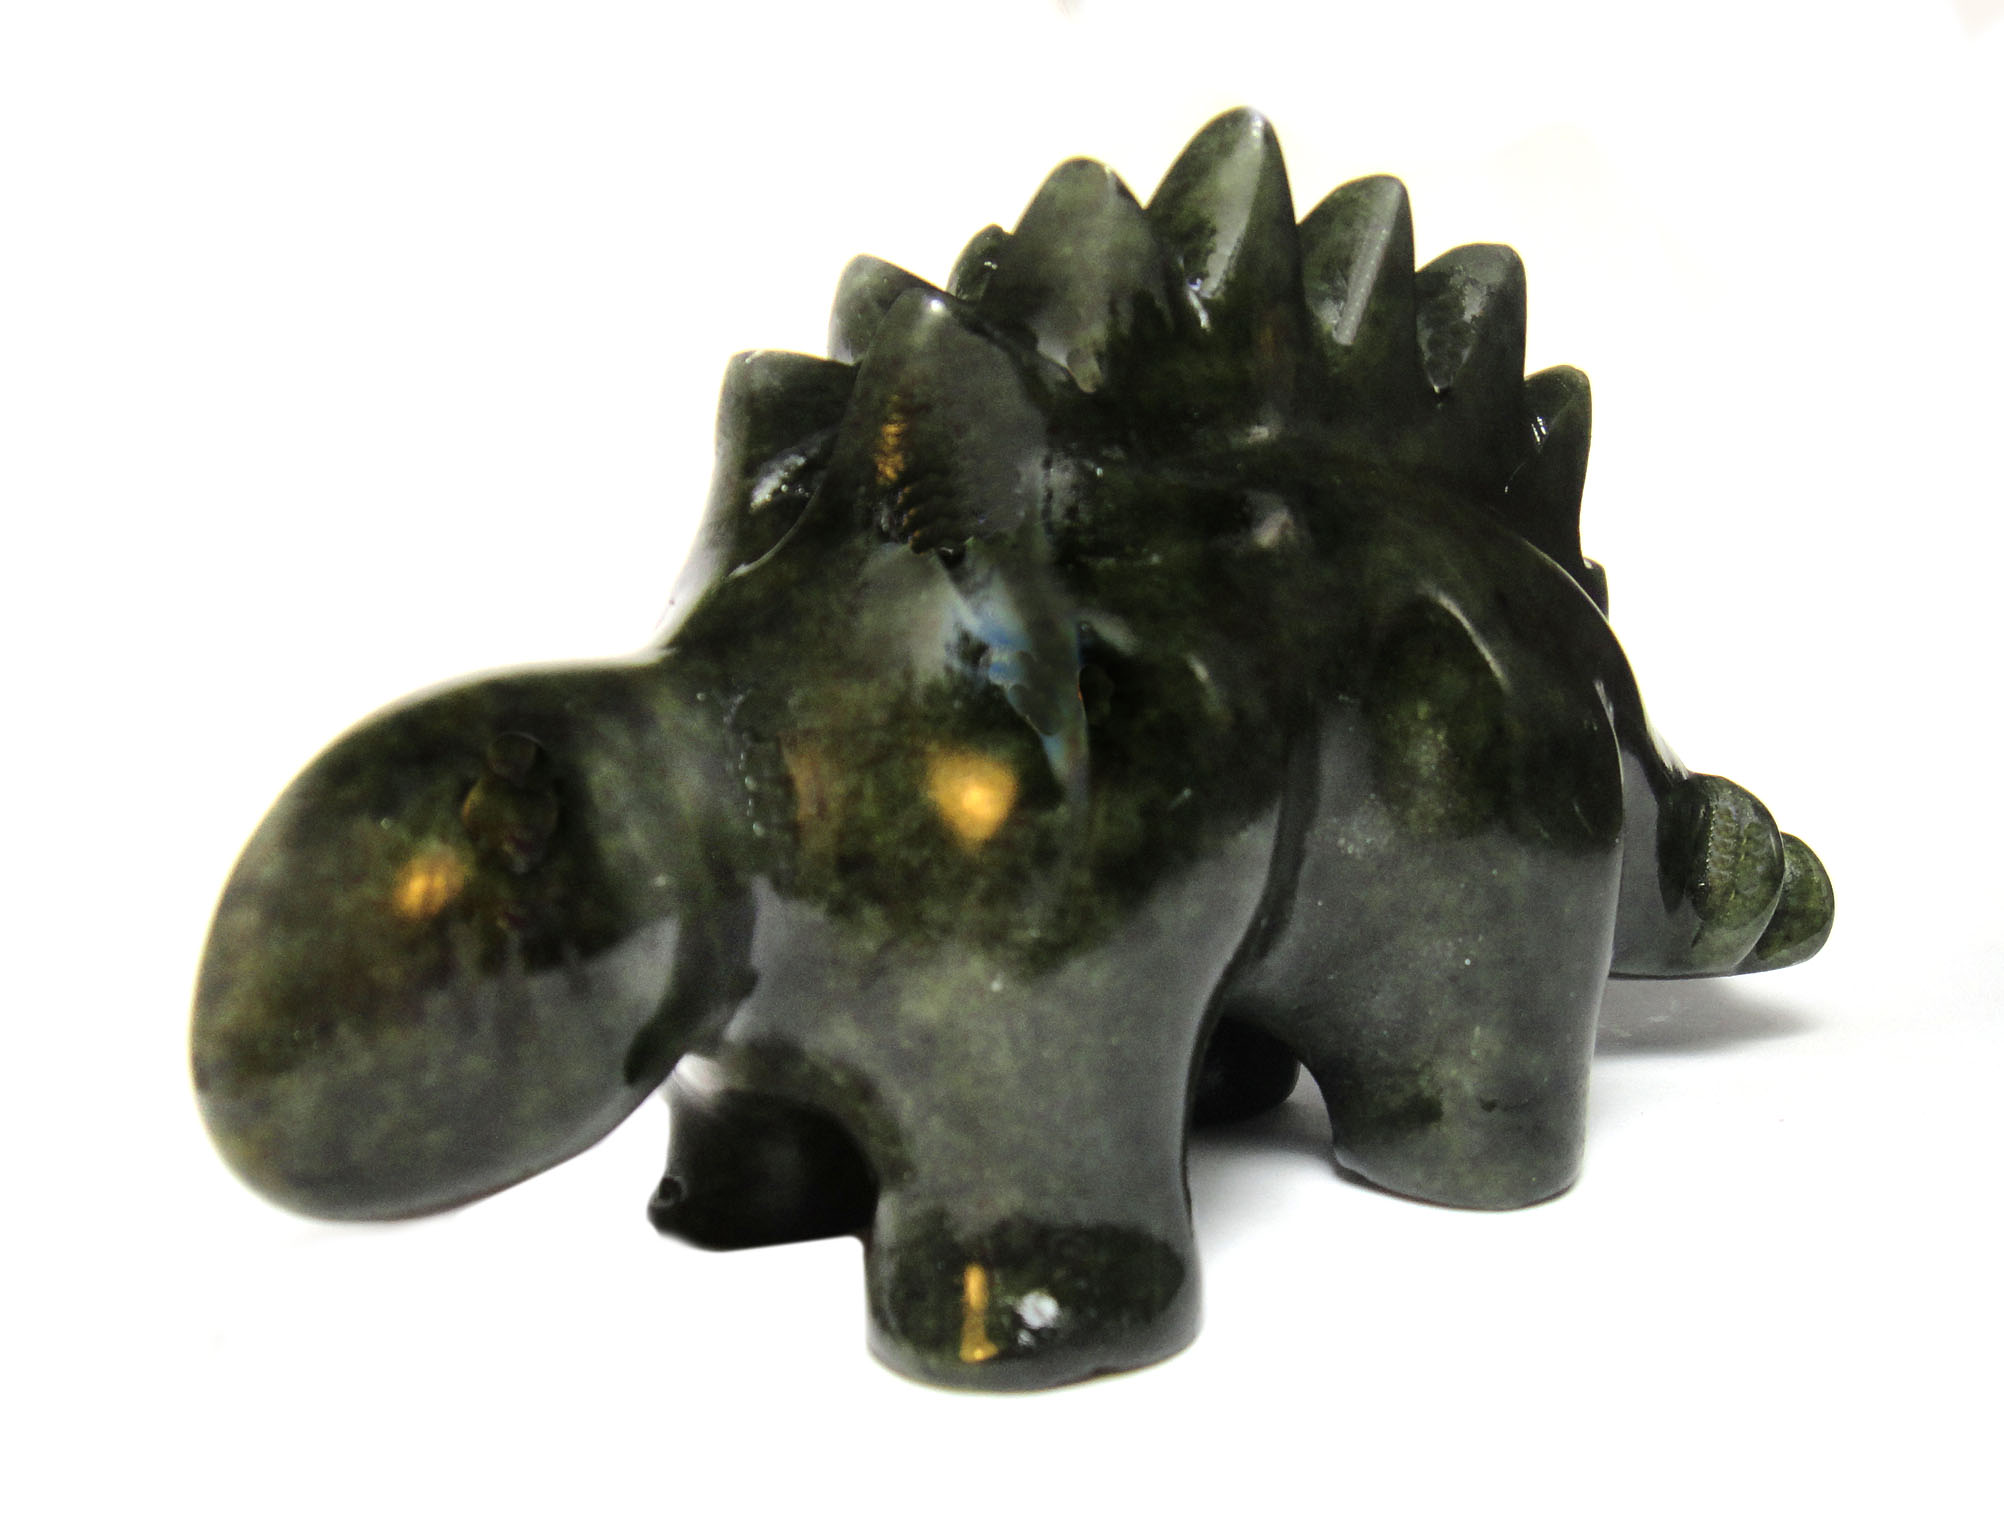 Soapstone Stegosaurus Sculpture Carving Kit